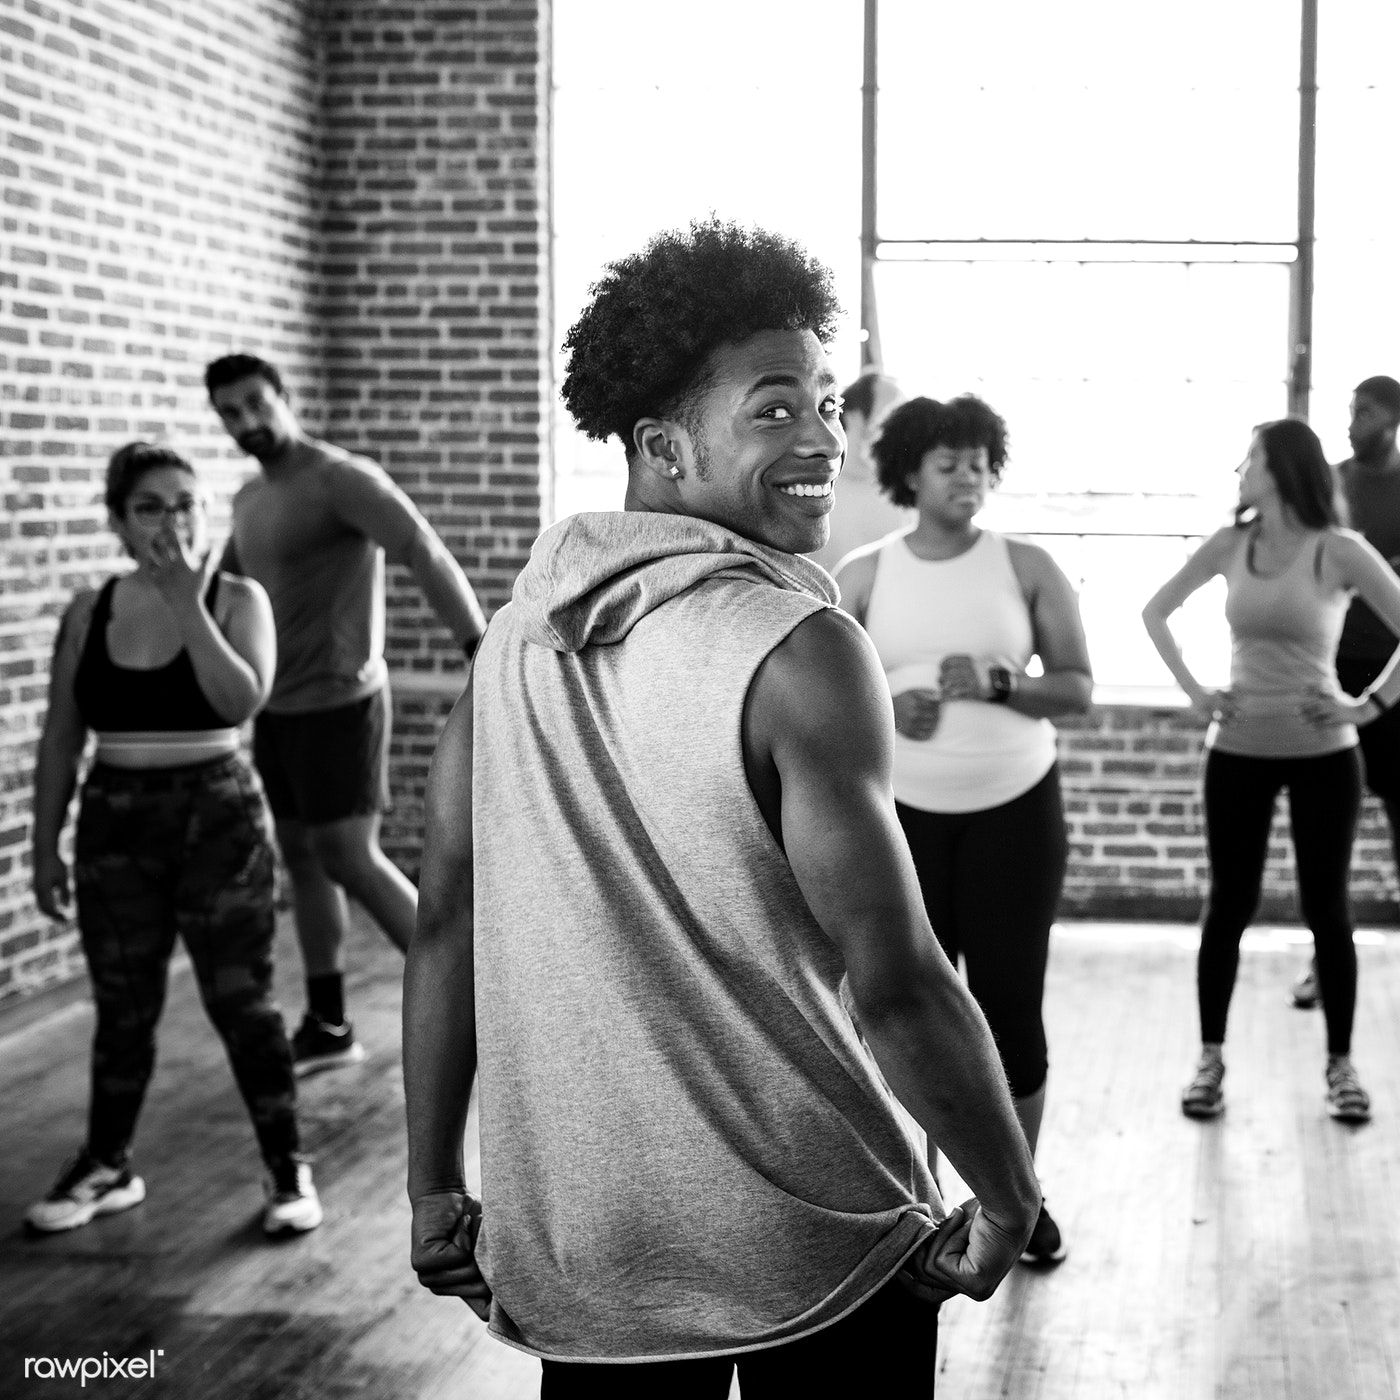 Download Premium Image Of Trainer With His Group Fitness Class 2045892 Fitness Class Group Fitness Classes Group Fitness